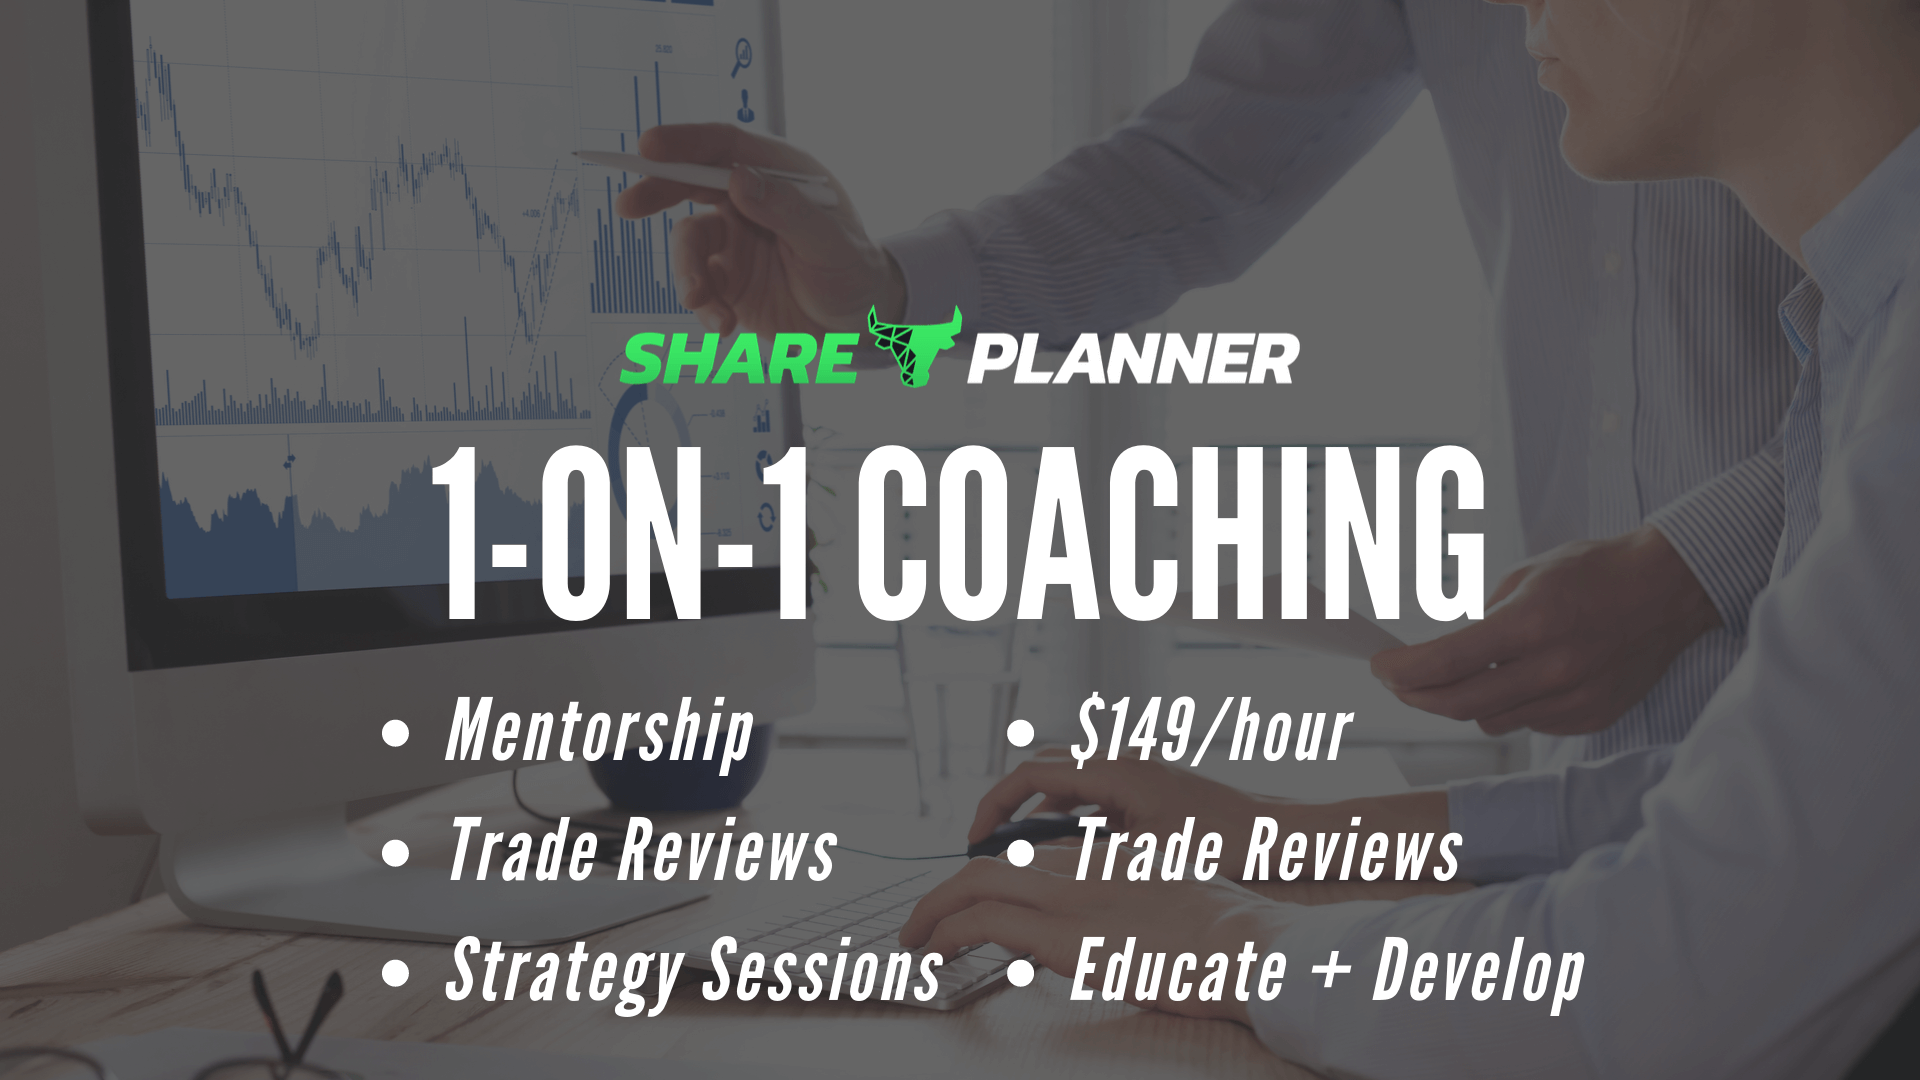 sharePlanner coaching stock market trading coach